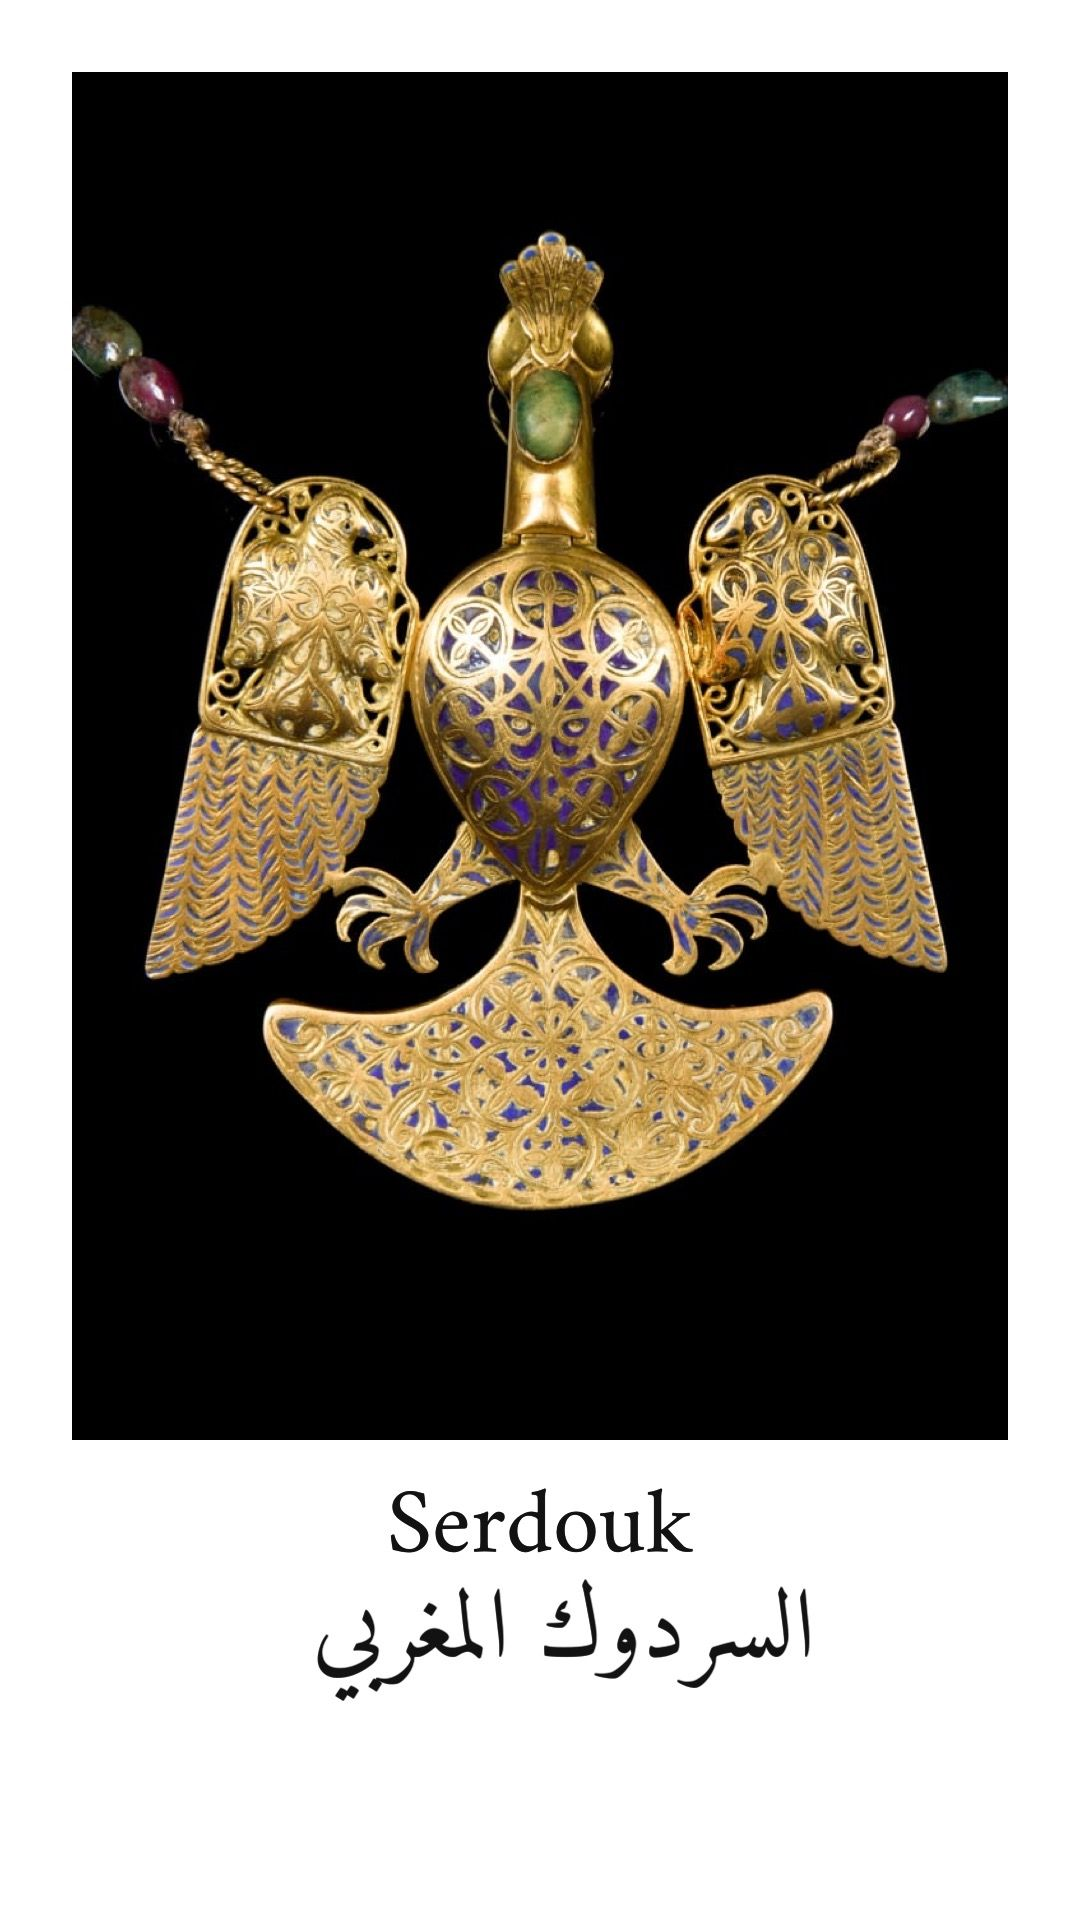 Moroccan Necklace Serdouk In 2020 Moroccan Necklace Perfume Bottles Gold